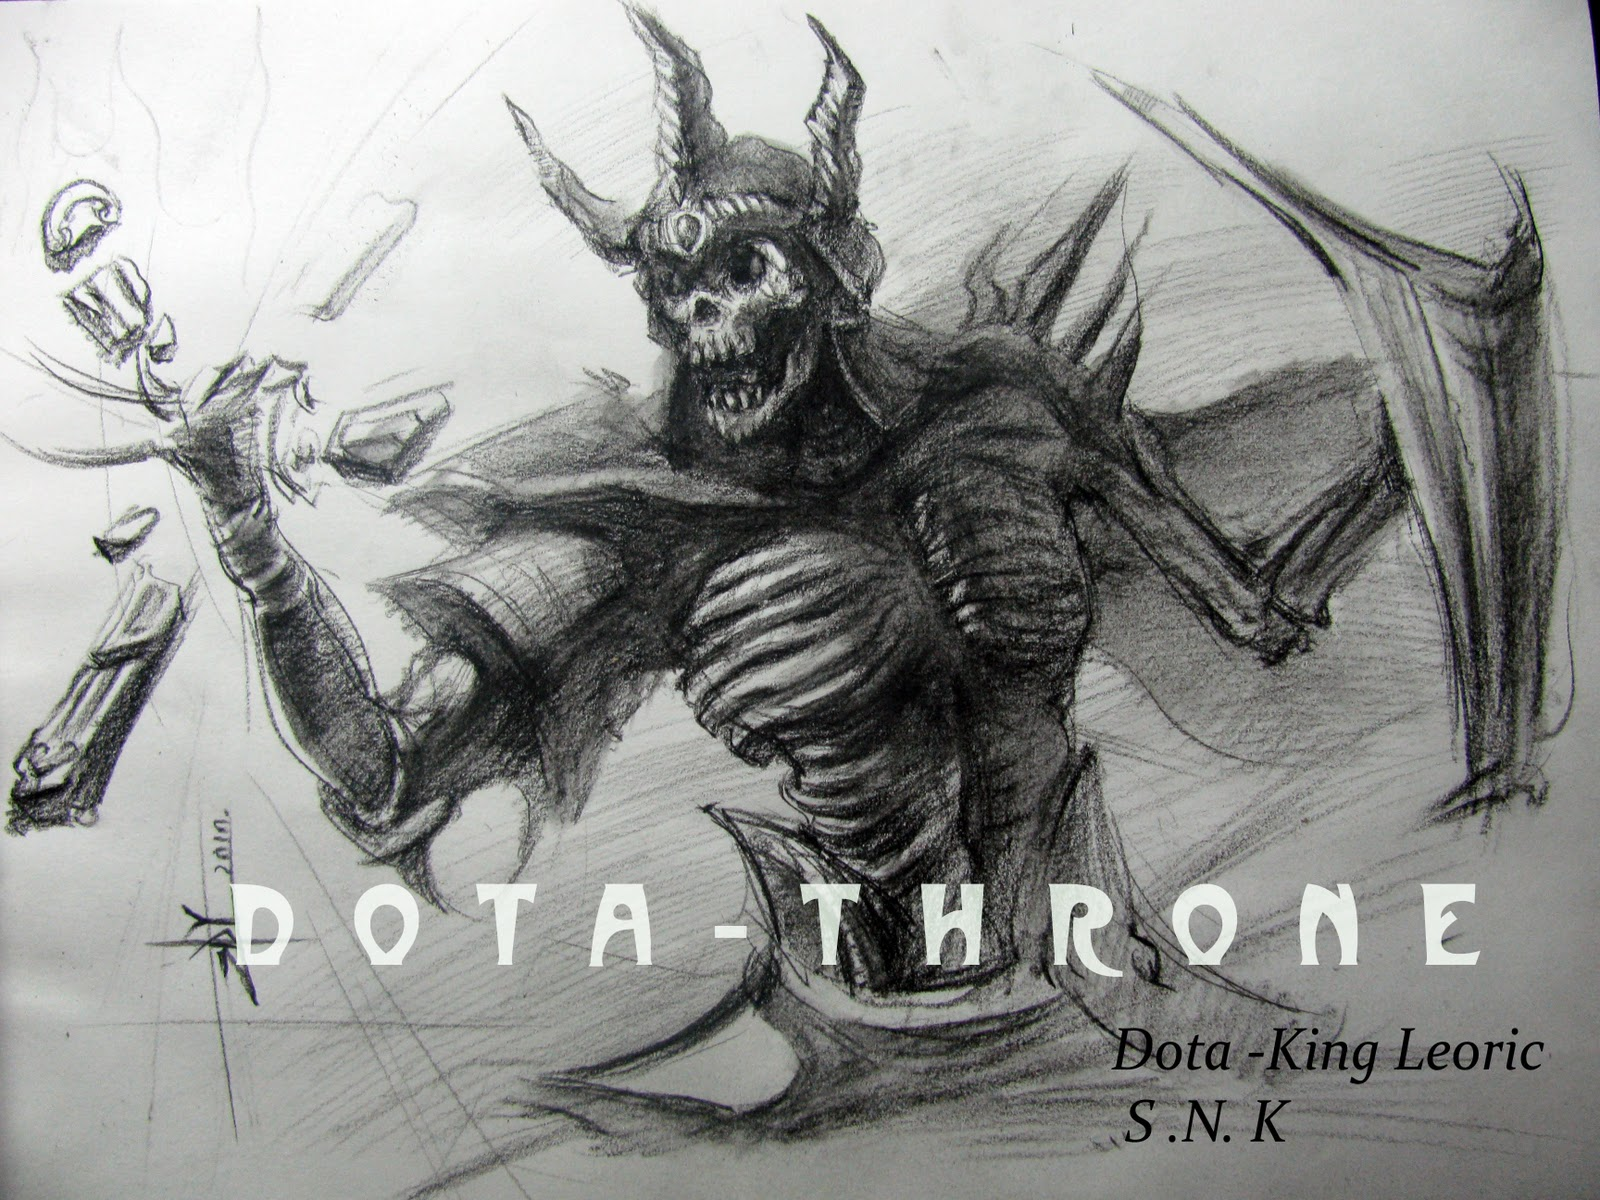 Dota-Throne - Defance Of The Ancients: Dota - King Leoric